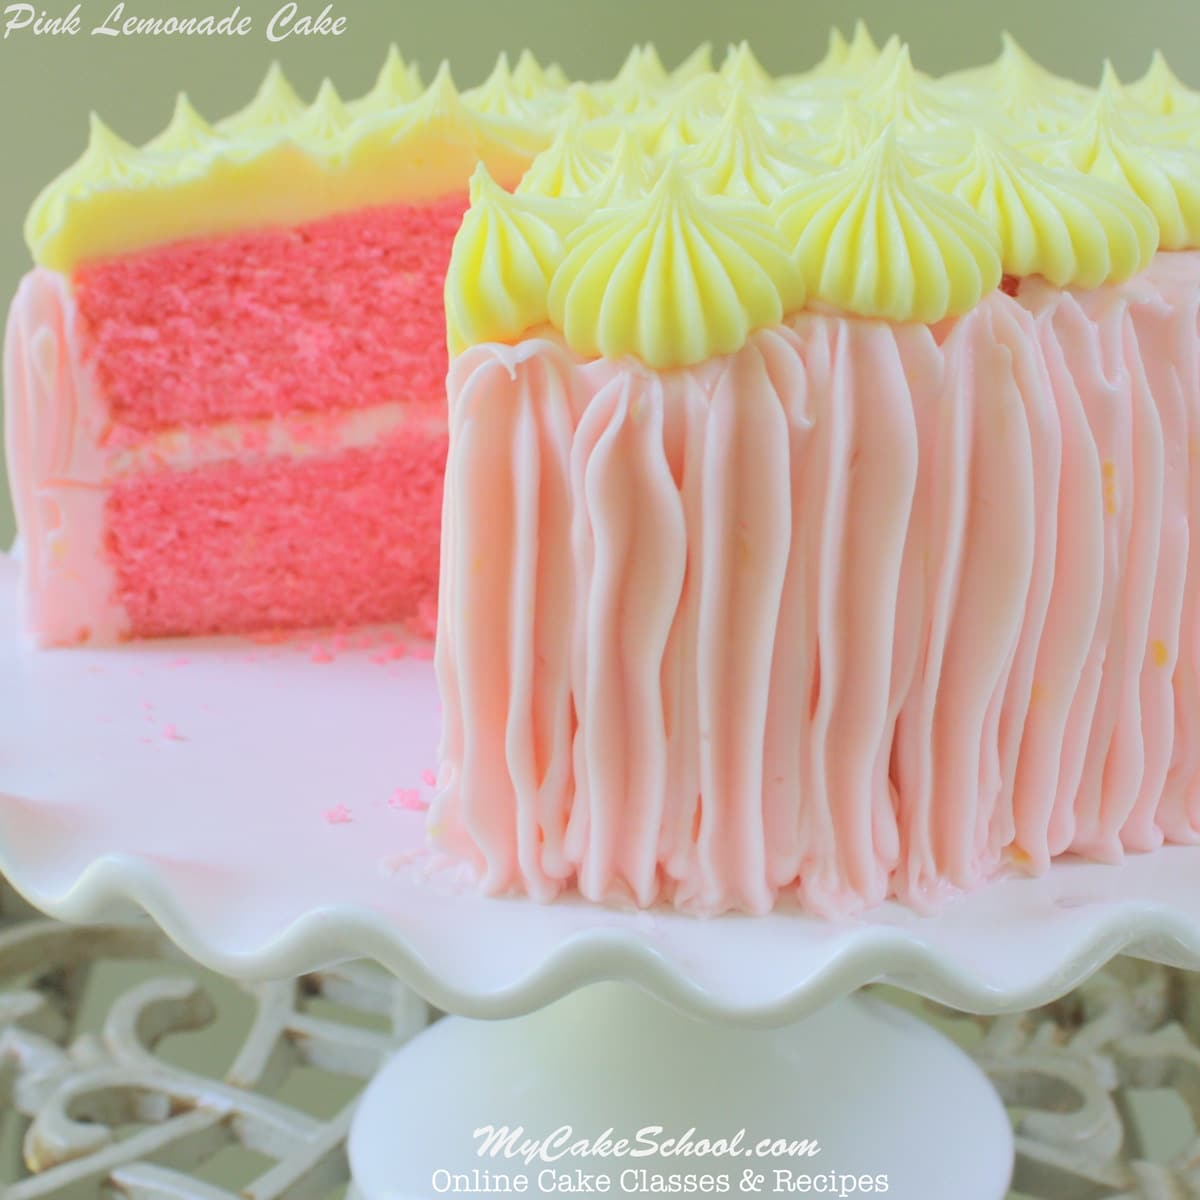 Pink Lemonade Cake Cream Cheese Frosting